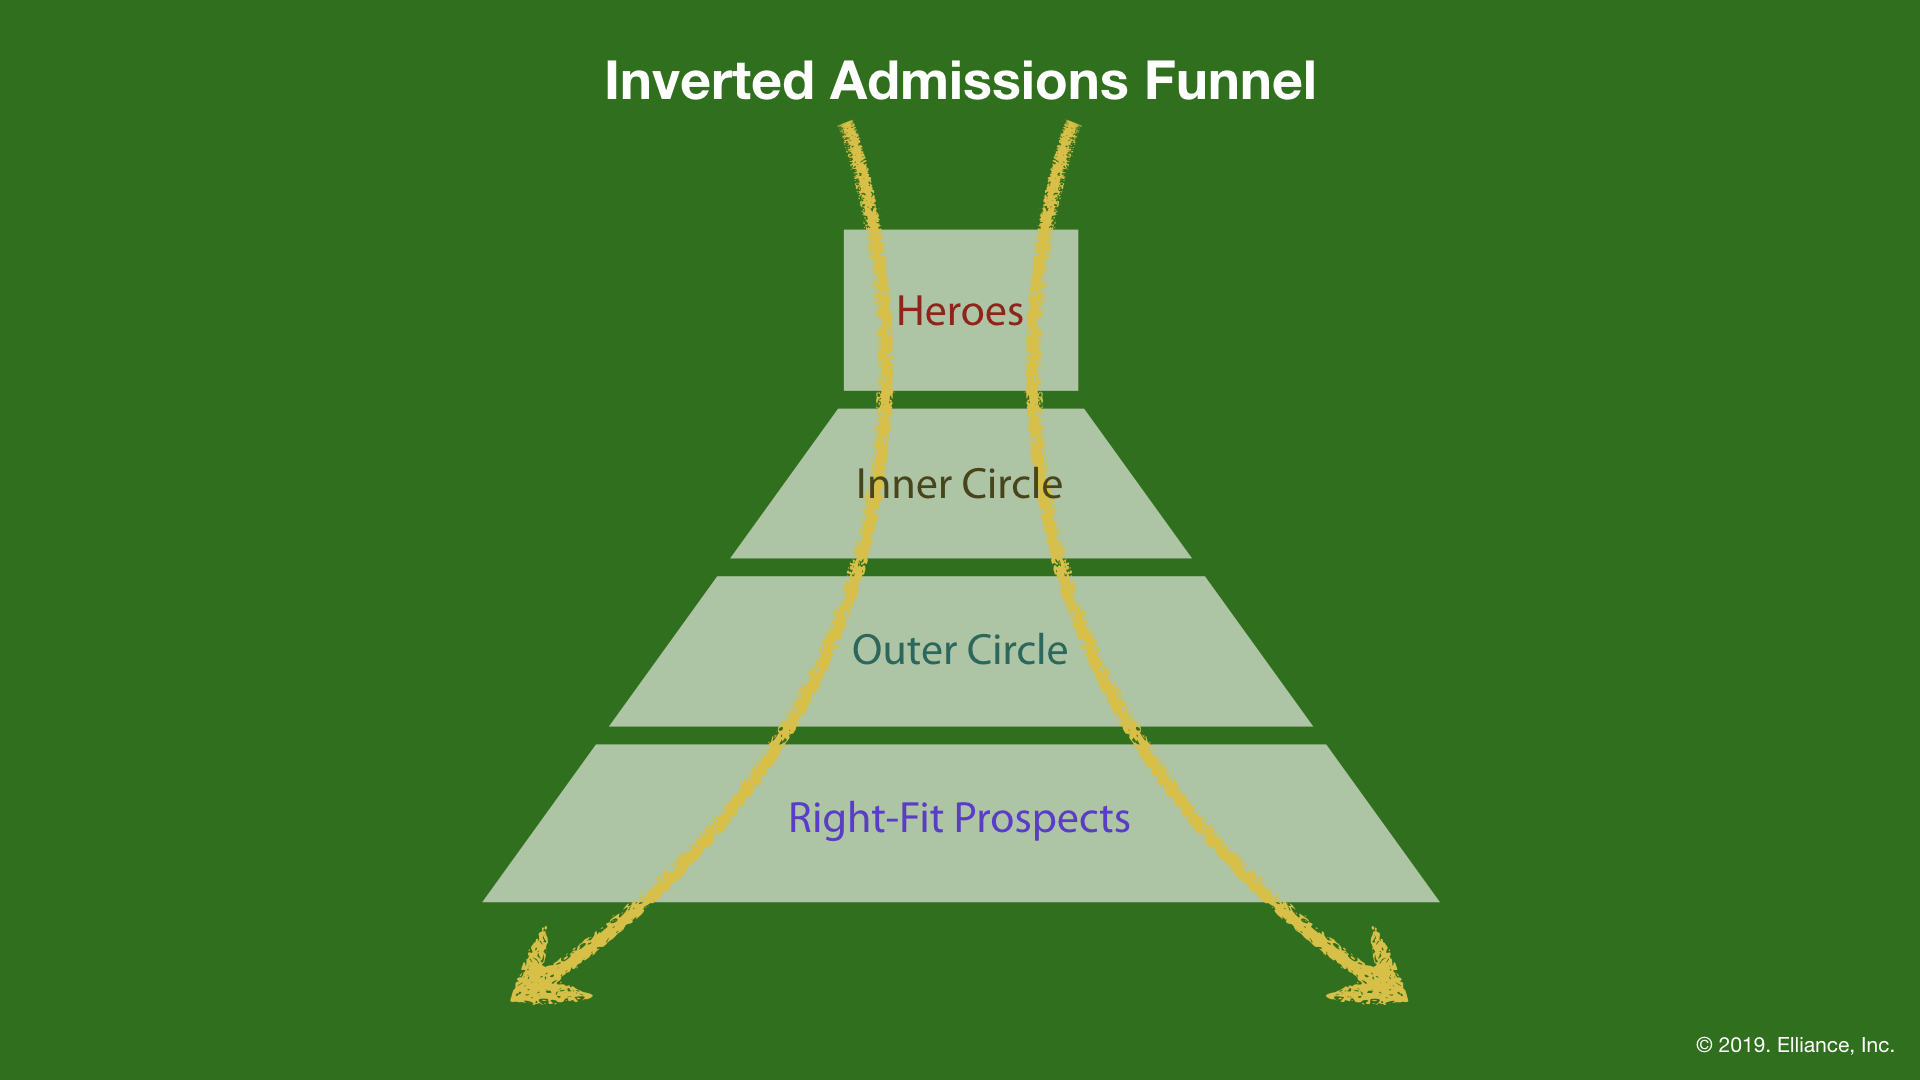 Inverted Admissions Funnel